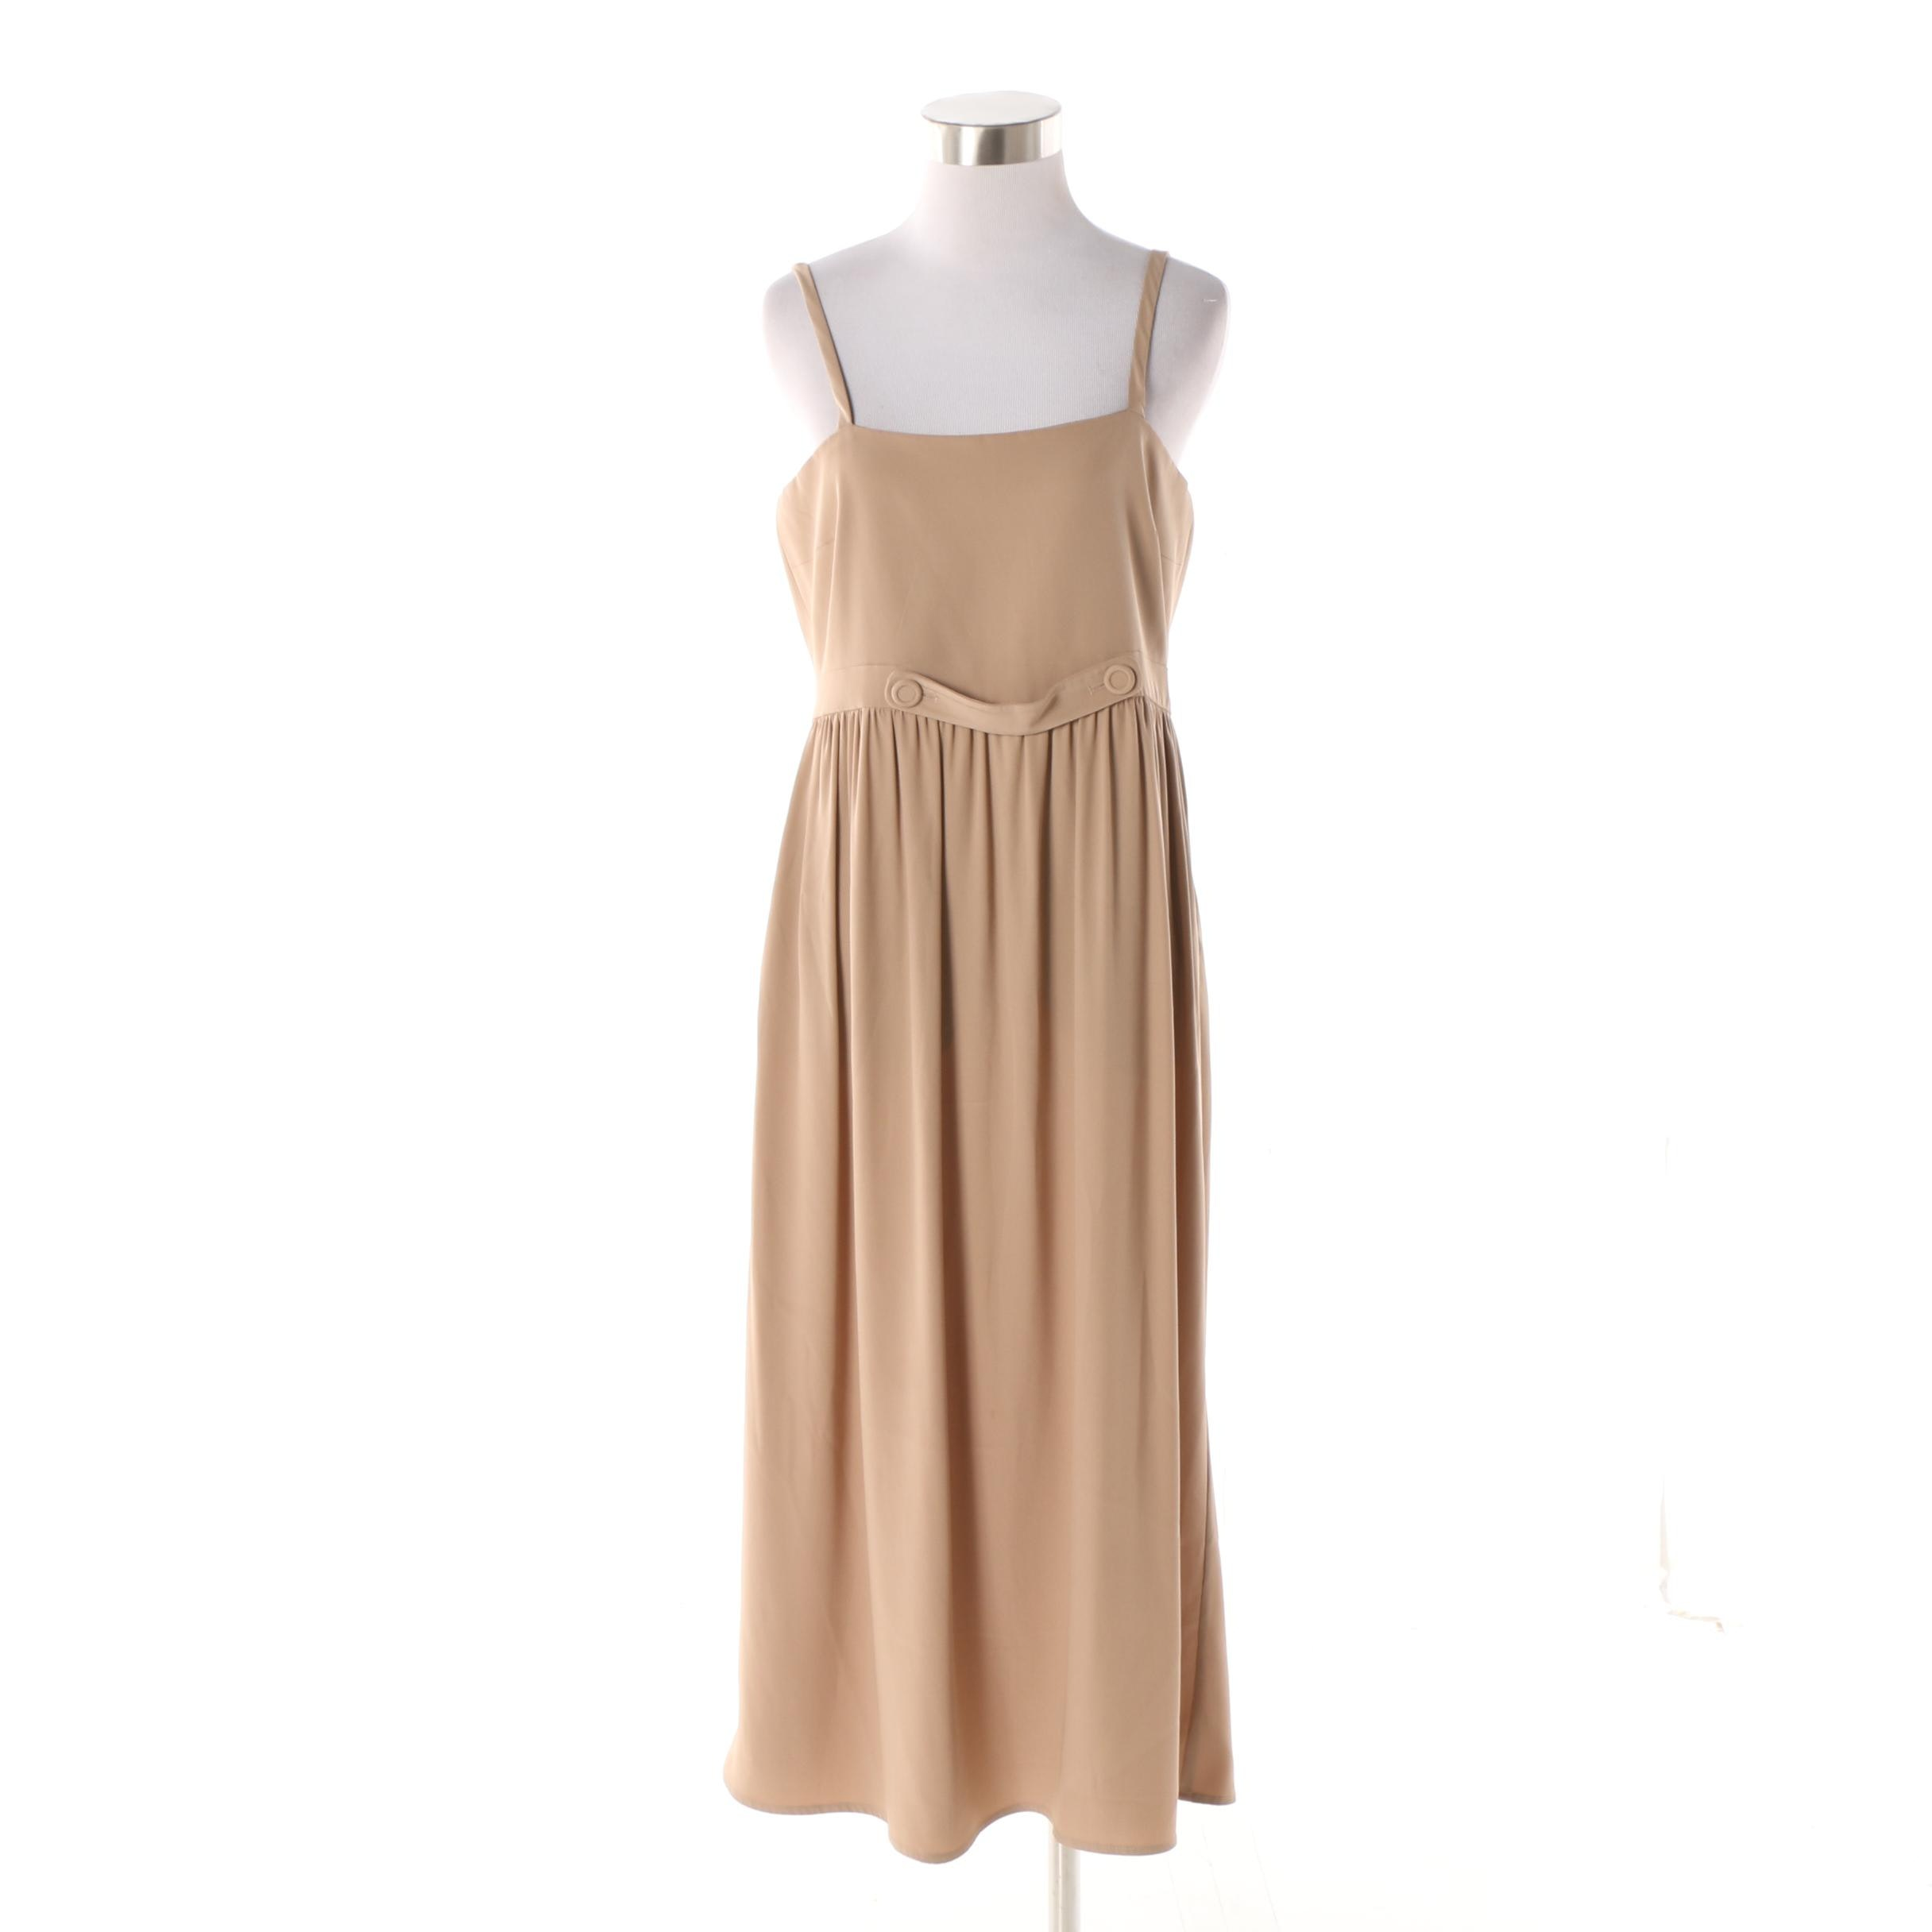 Modello Giulietta of New York Italian Made Tan Spaghetti Strap Apron Dress